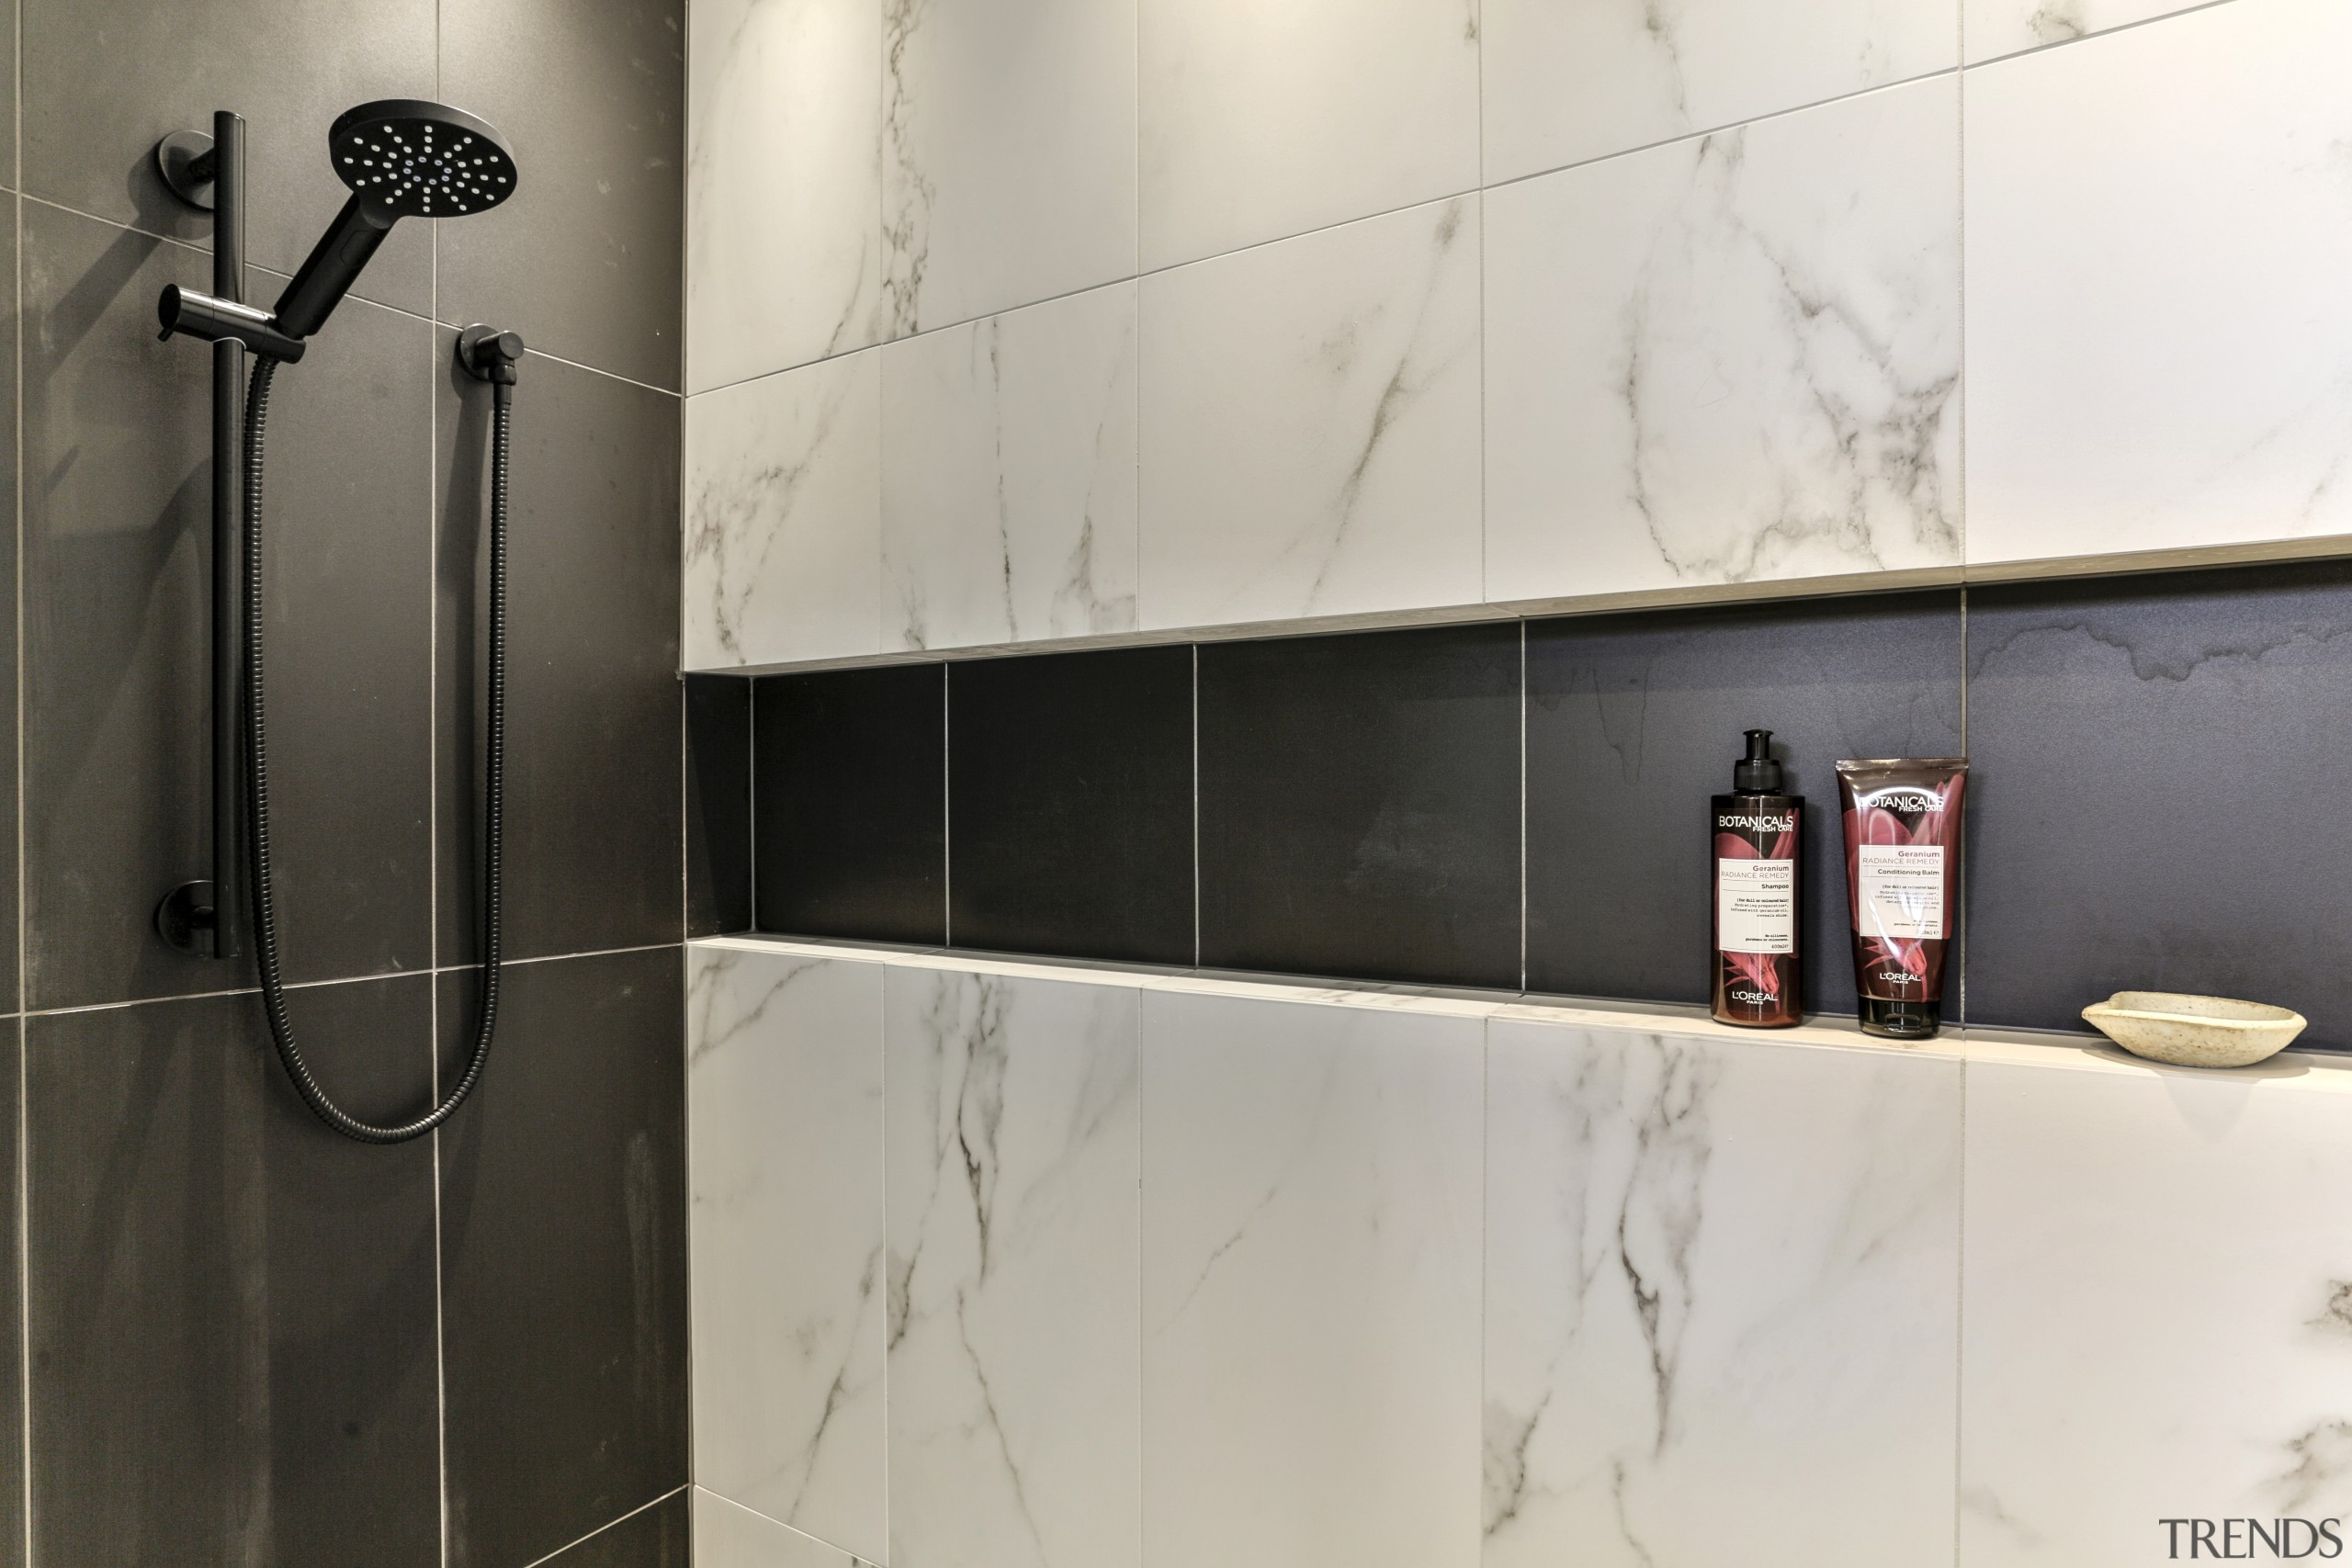 A long, walk-in shower stall allows for an gray, black